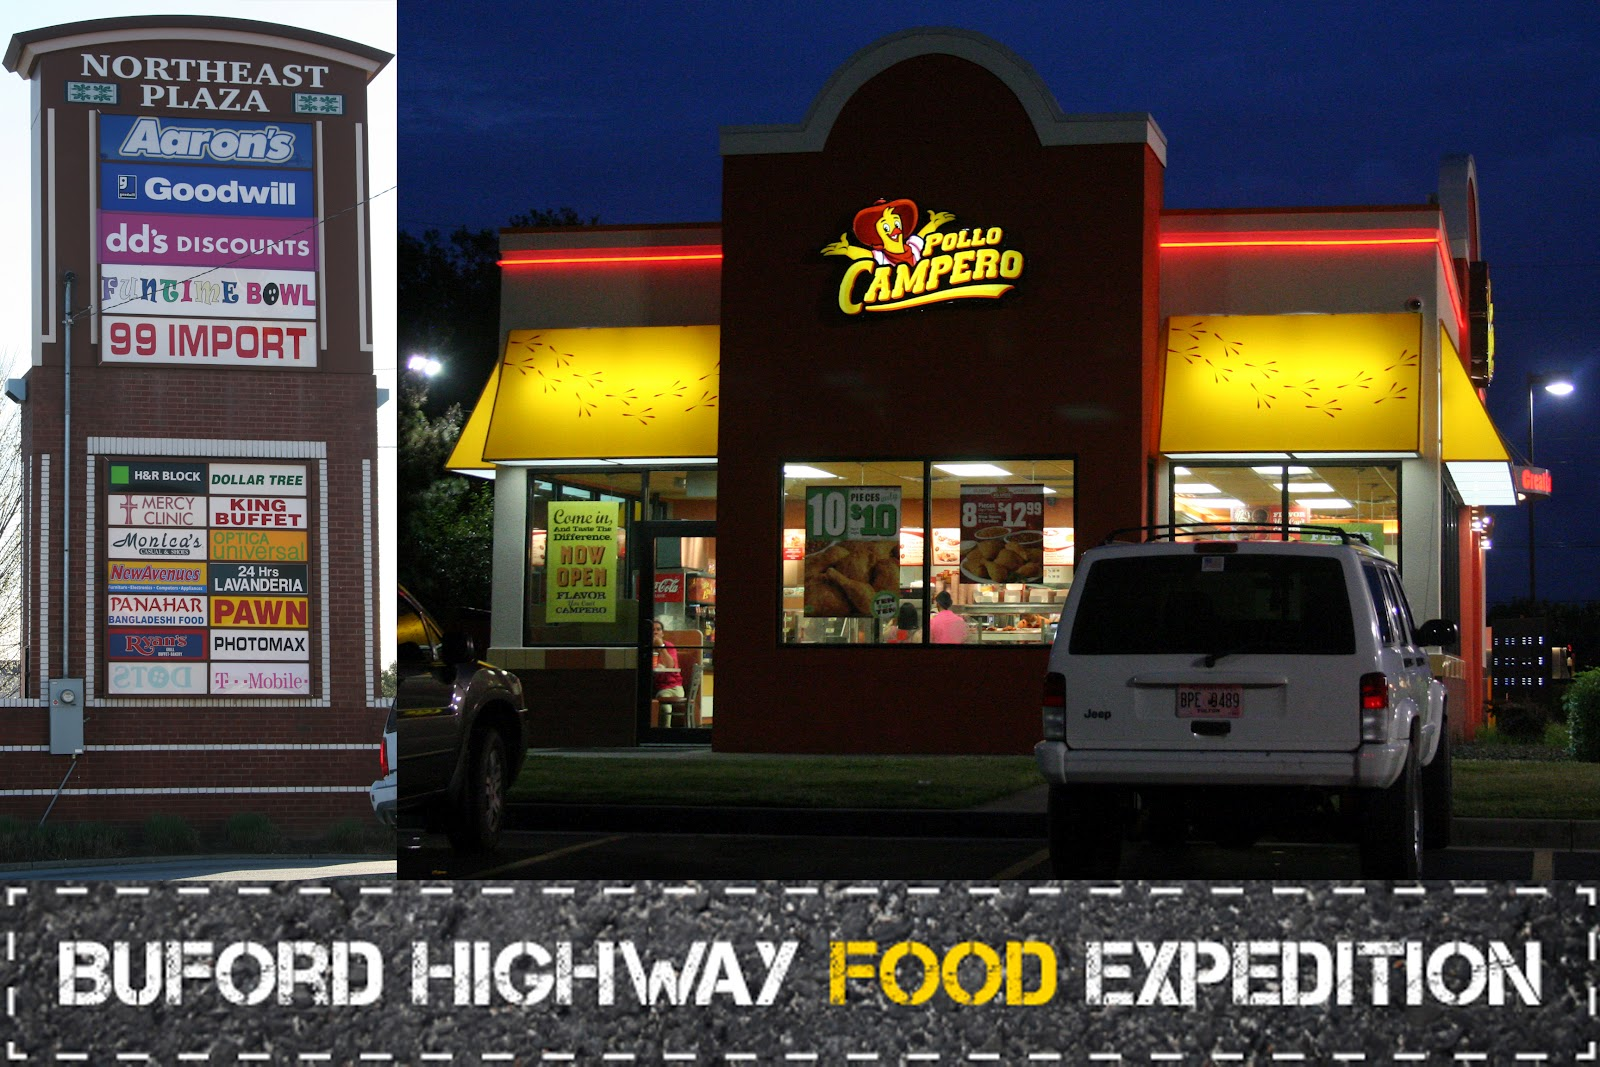 Pollo Campero, Restaurants business in Chicago. See up-to-date pricelists and view recent announcements for this lasourisglobe-trotteuse.tkry: Restaurants.